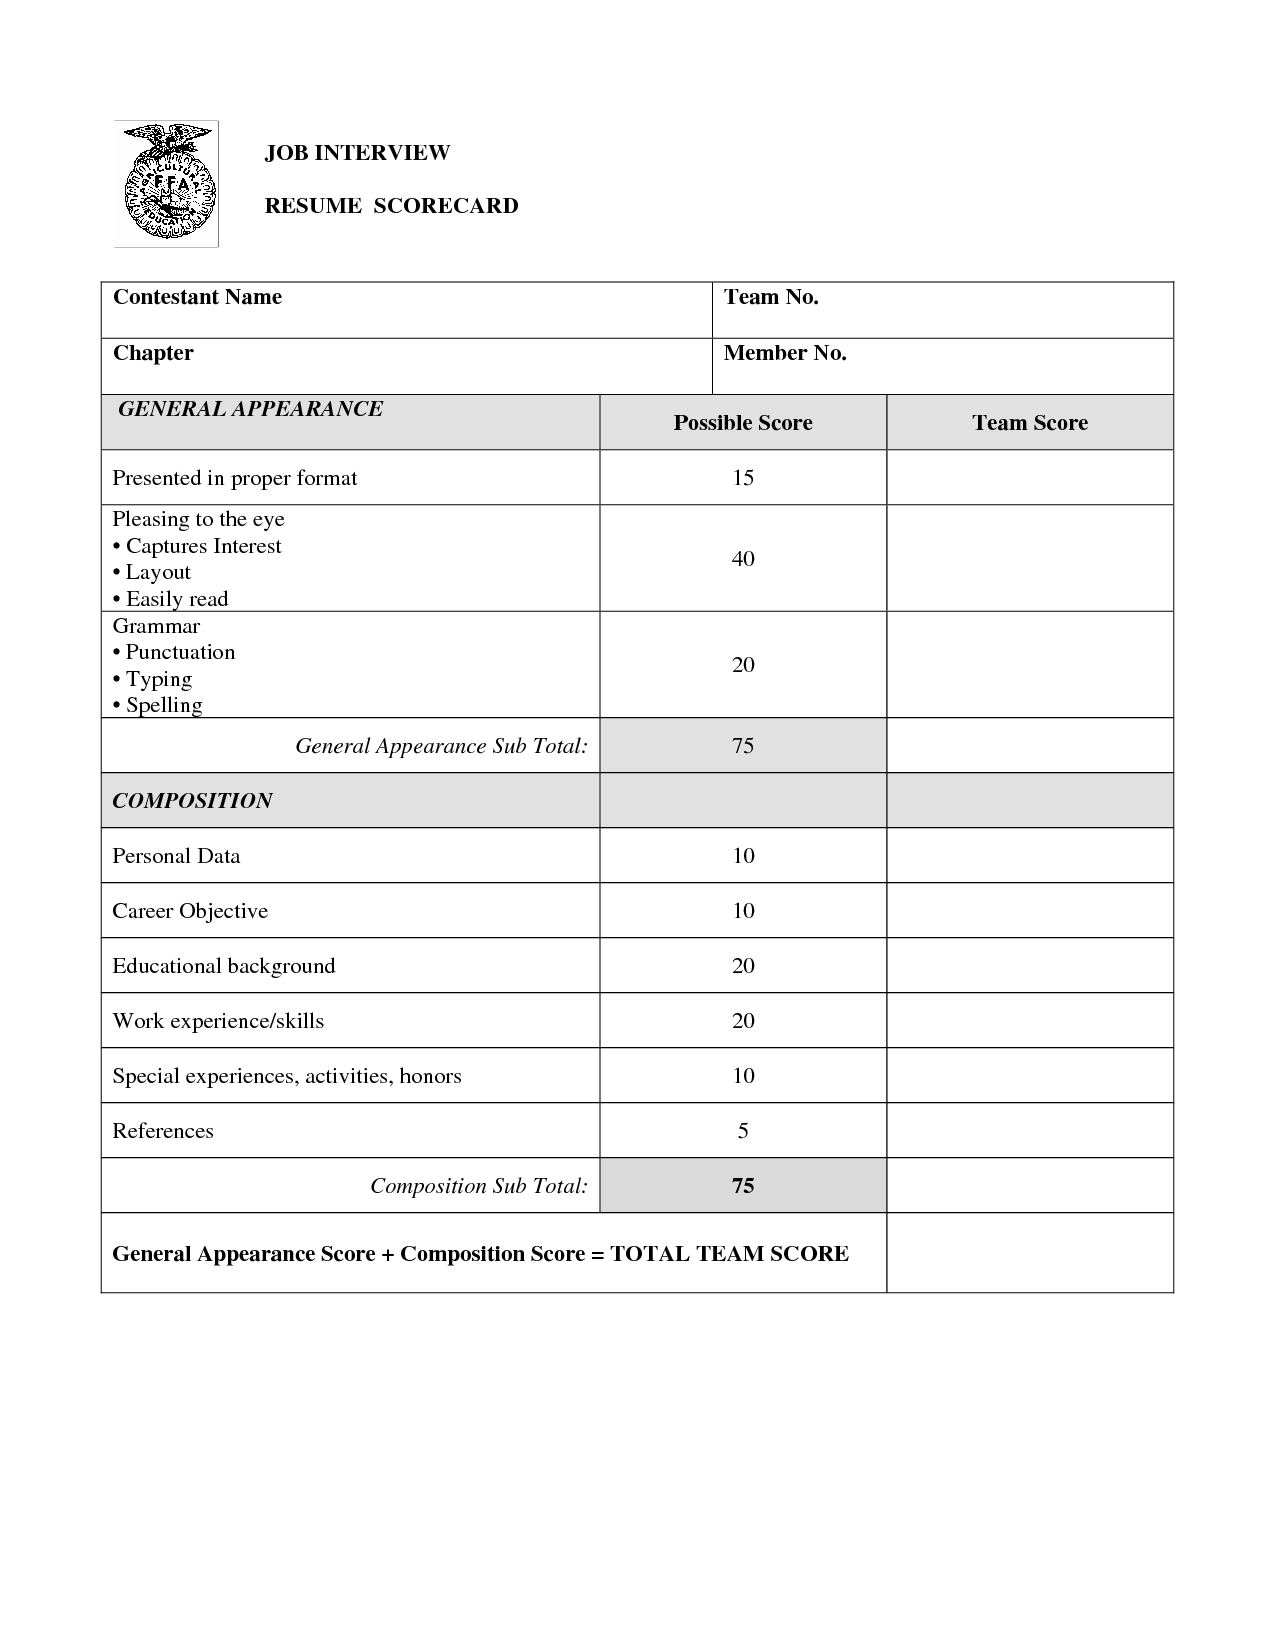 job interview scorecard template repin to library learning - Resume For Interview Sample